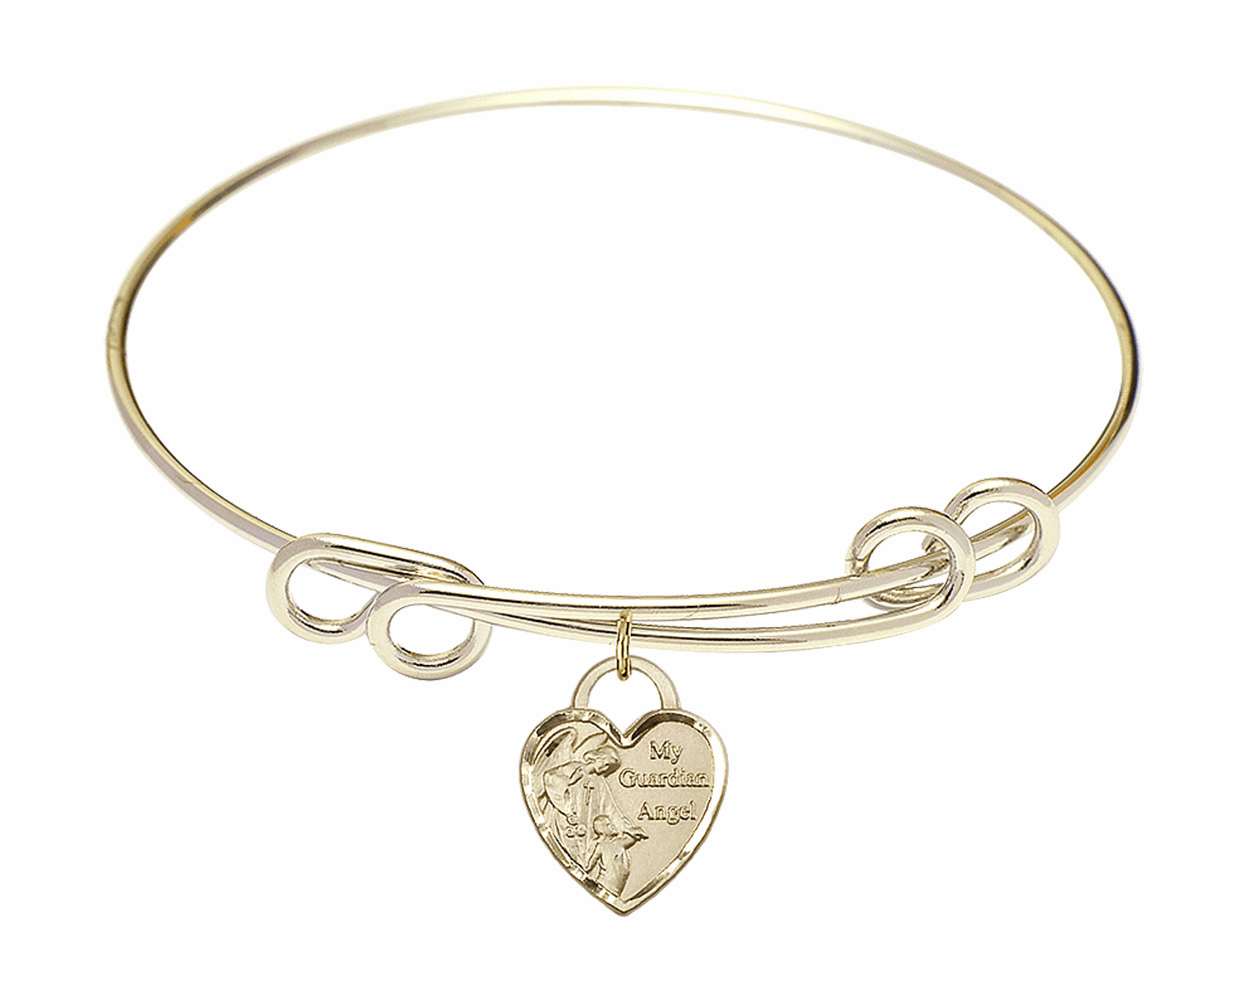 Round Double Loop Bangle Bracelet w/Heart My Guardian Angel Charm by Bliss Mfg